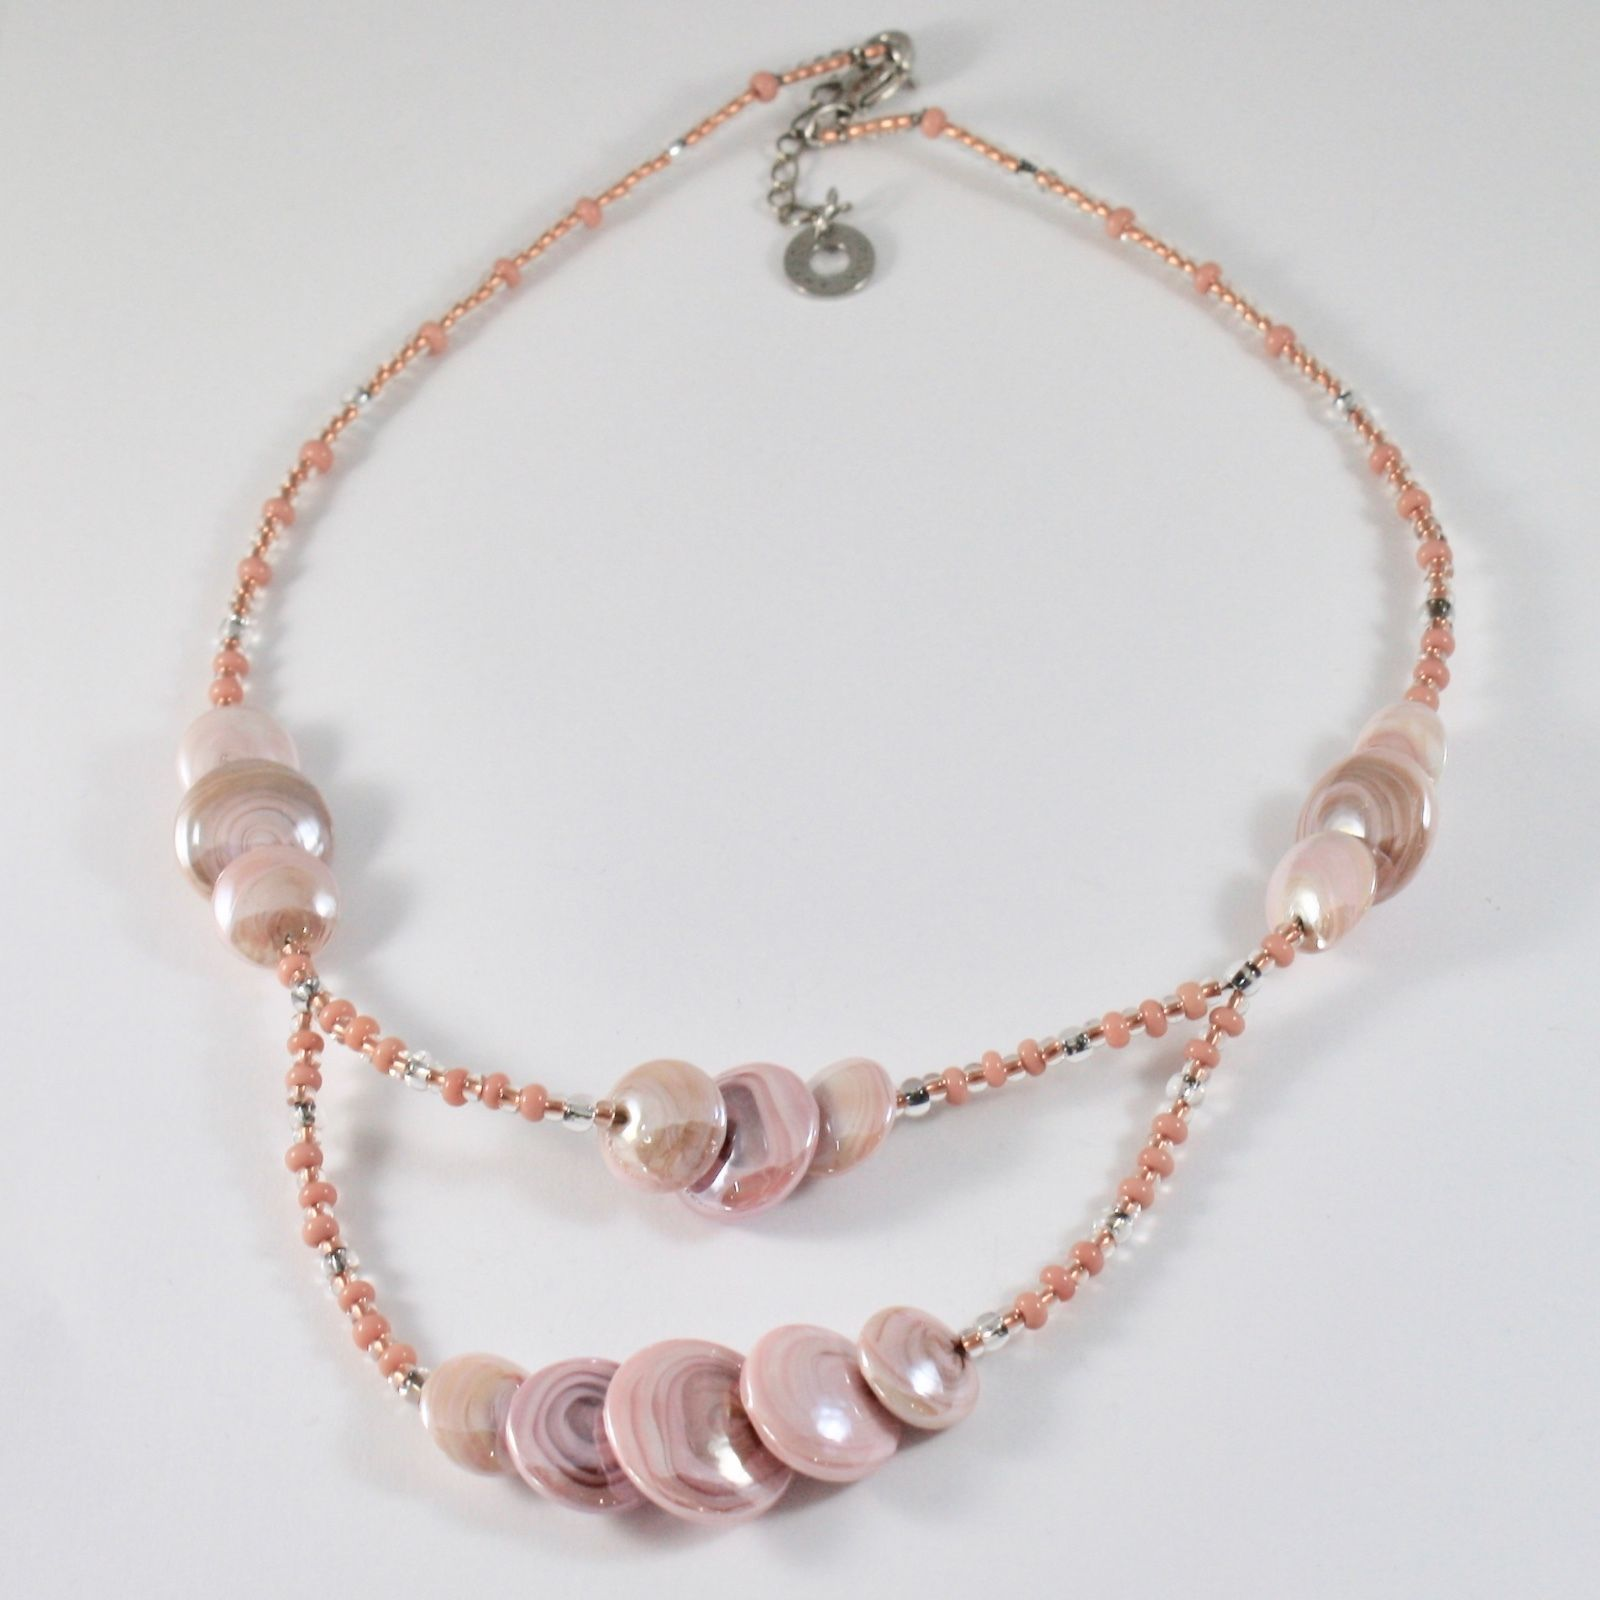 ANTICA MURRINA VENEZIA LONG DOUBLE NECKLACE WITH BIG PINK MURANO GLASS DISCS